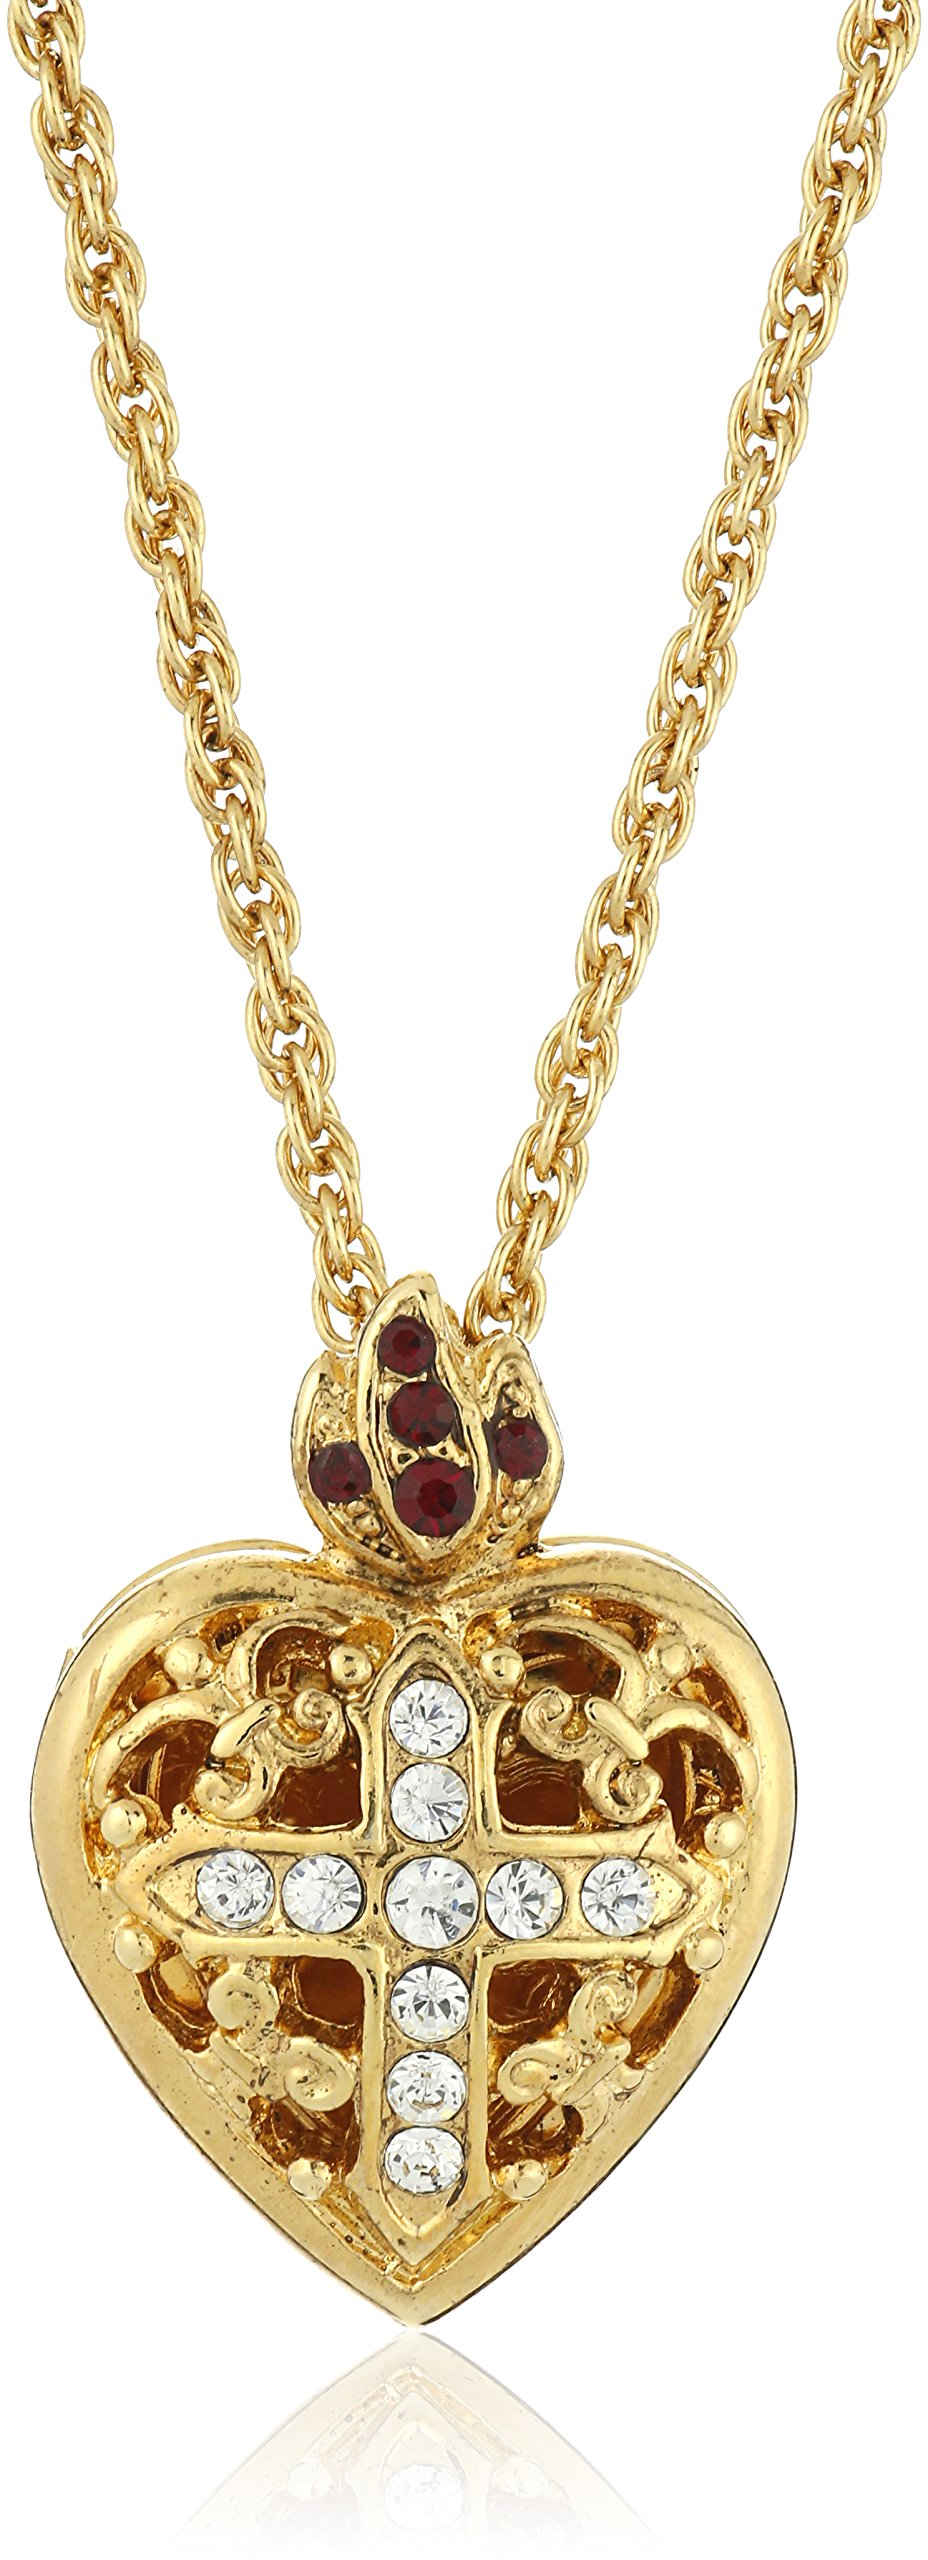 Symbols of Faith Inspirations 14k Gold-Dipped Crystal Heart Cross Locket Necklace, 17.5 inches